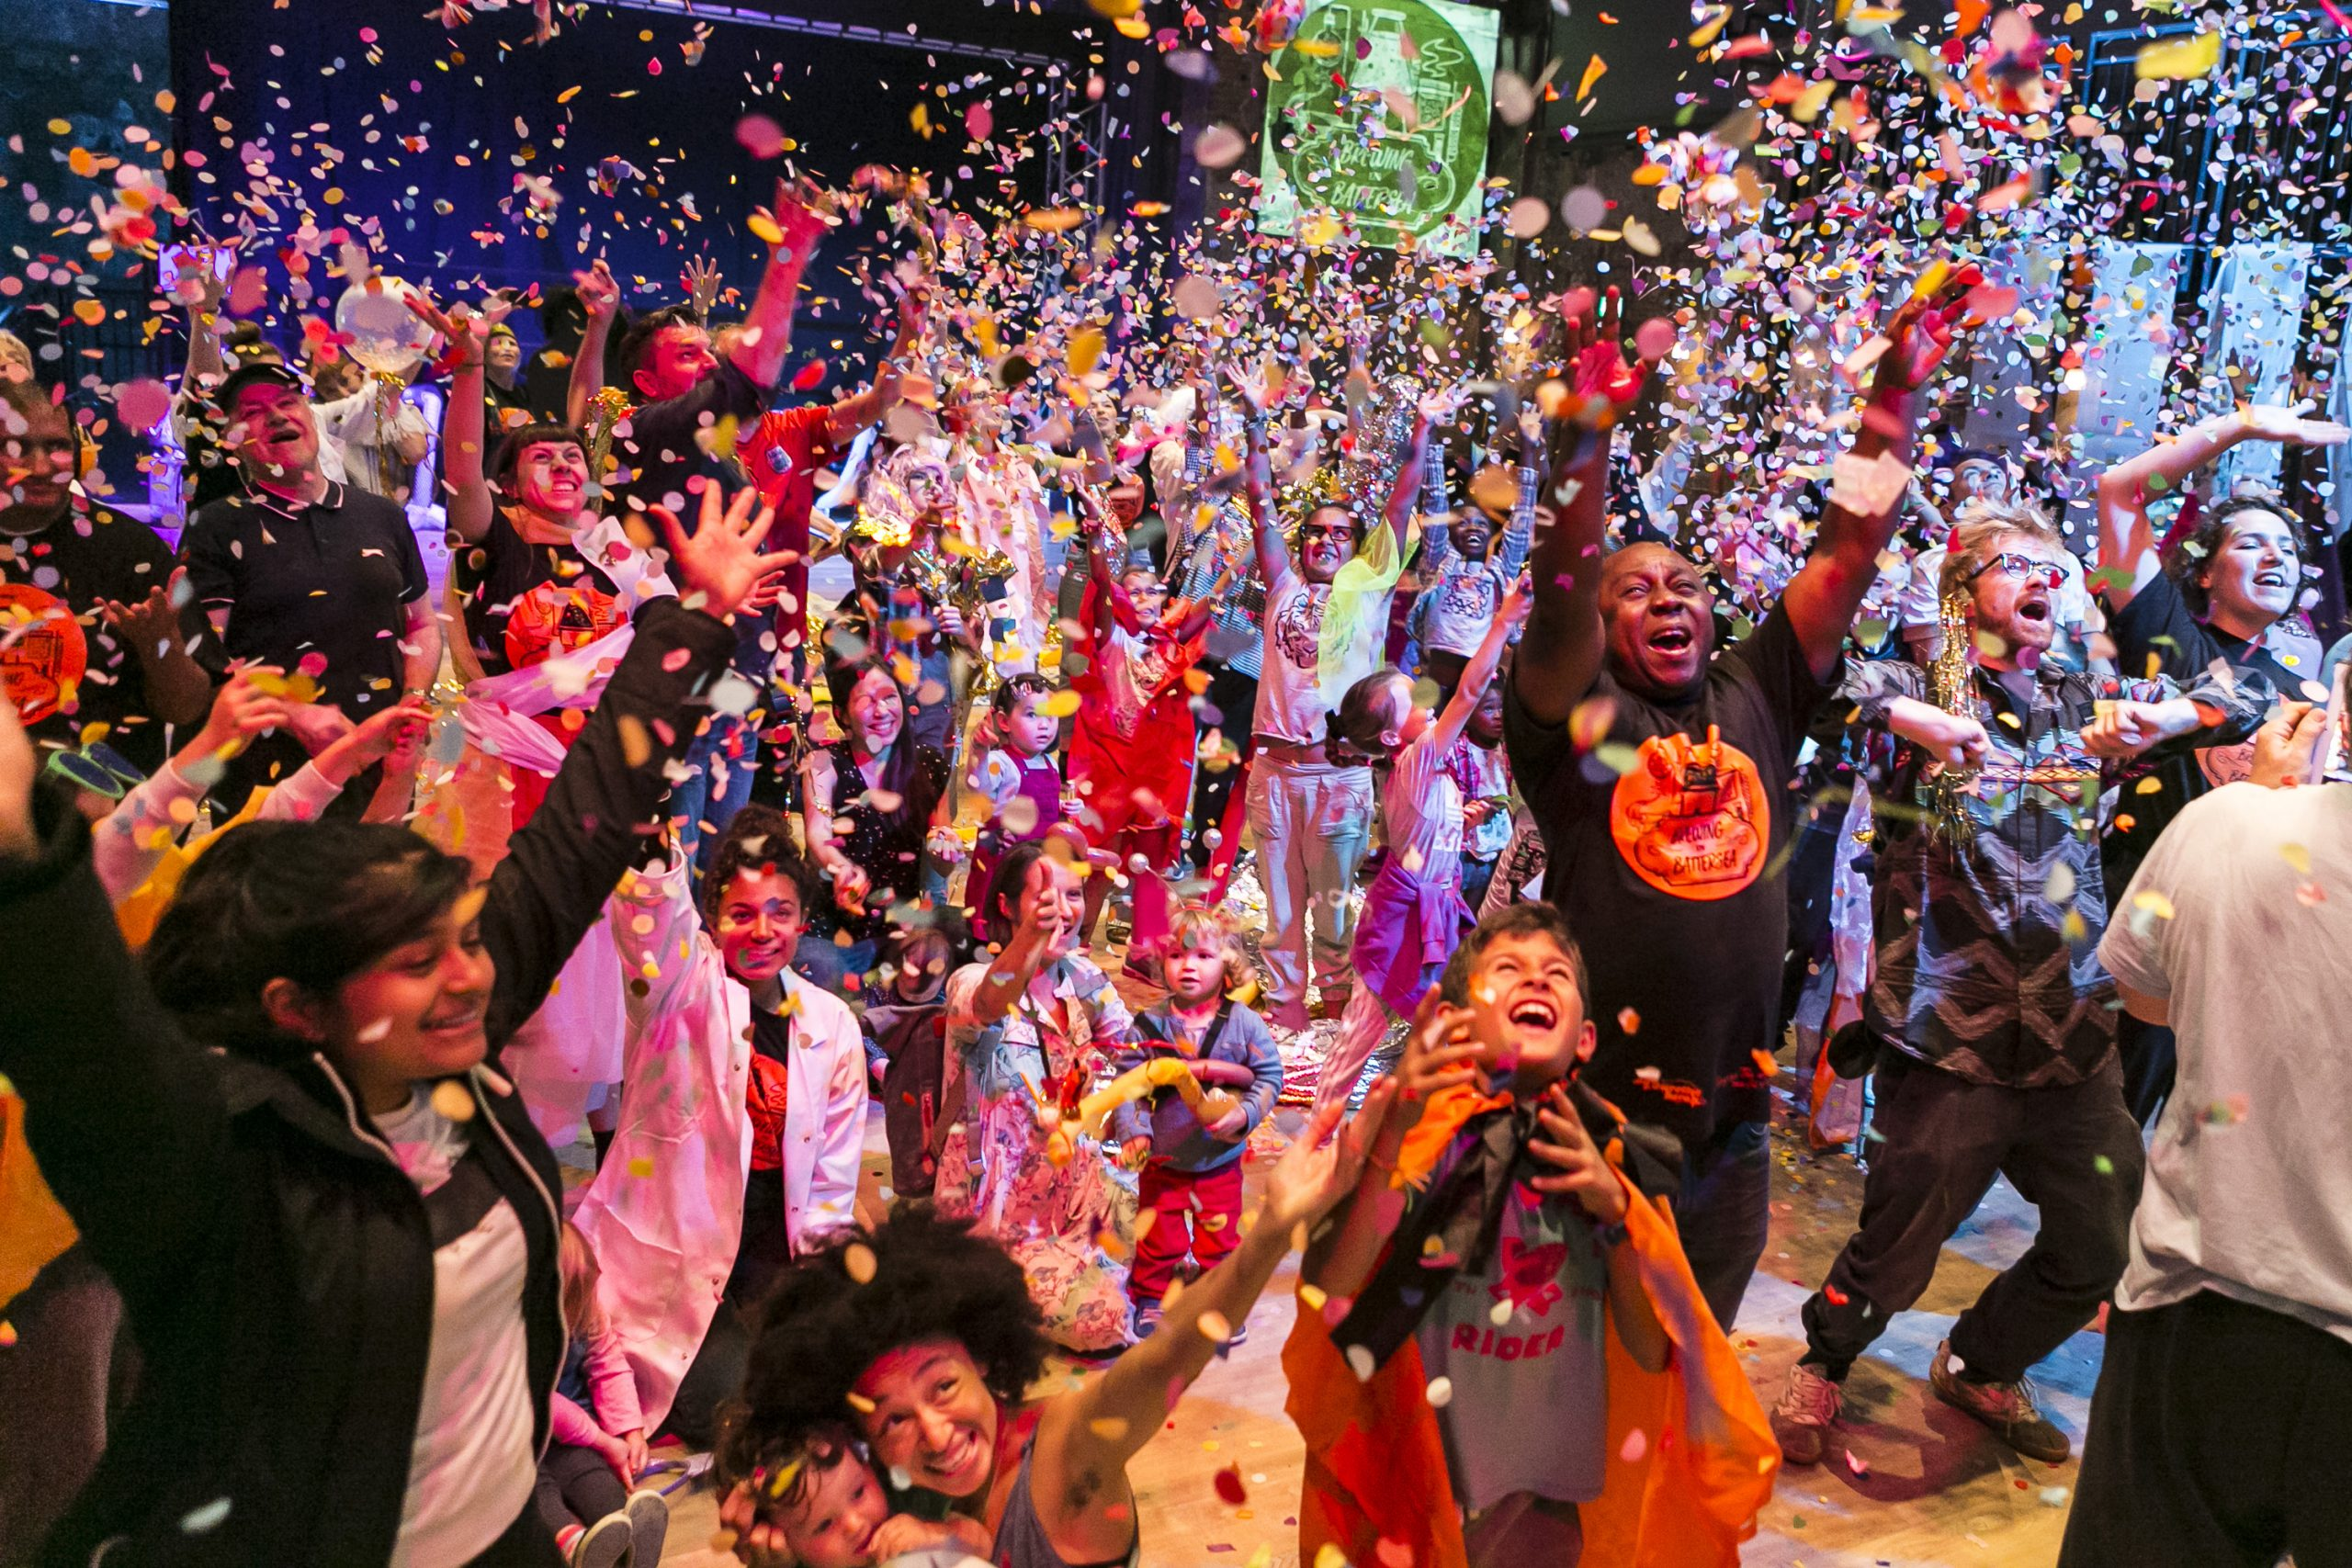 A photograph of David Ogwe in a large group of young people and adults at Touretteshero's Brewing in Battersea event the moment a confetti canon has gone off. David, along with everybody else in the photograph are smiling and cheering with both arms in the air.